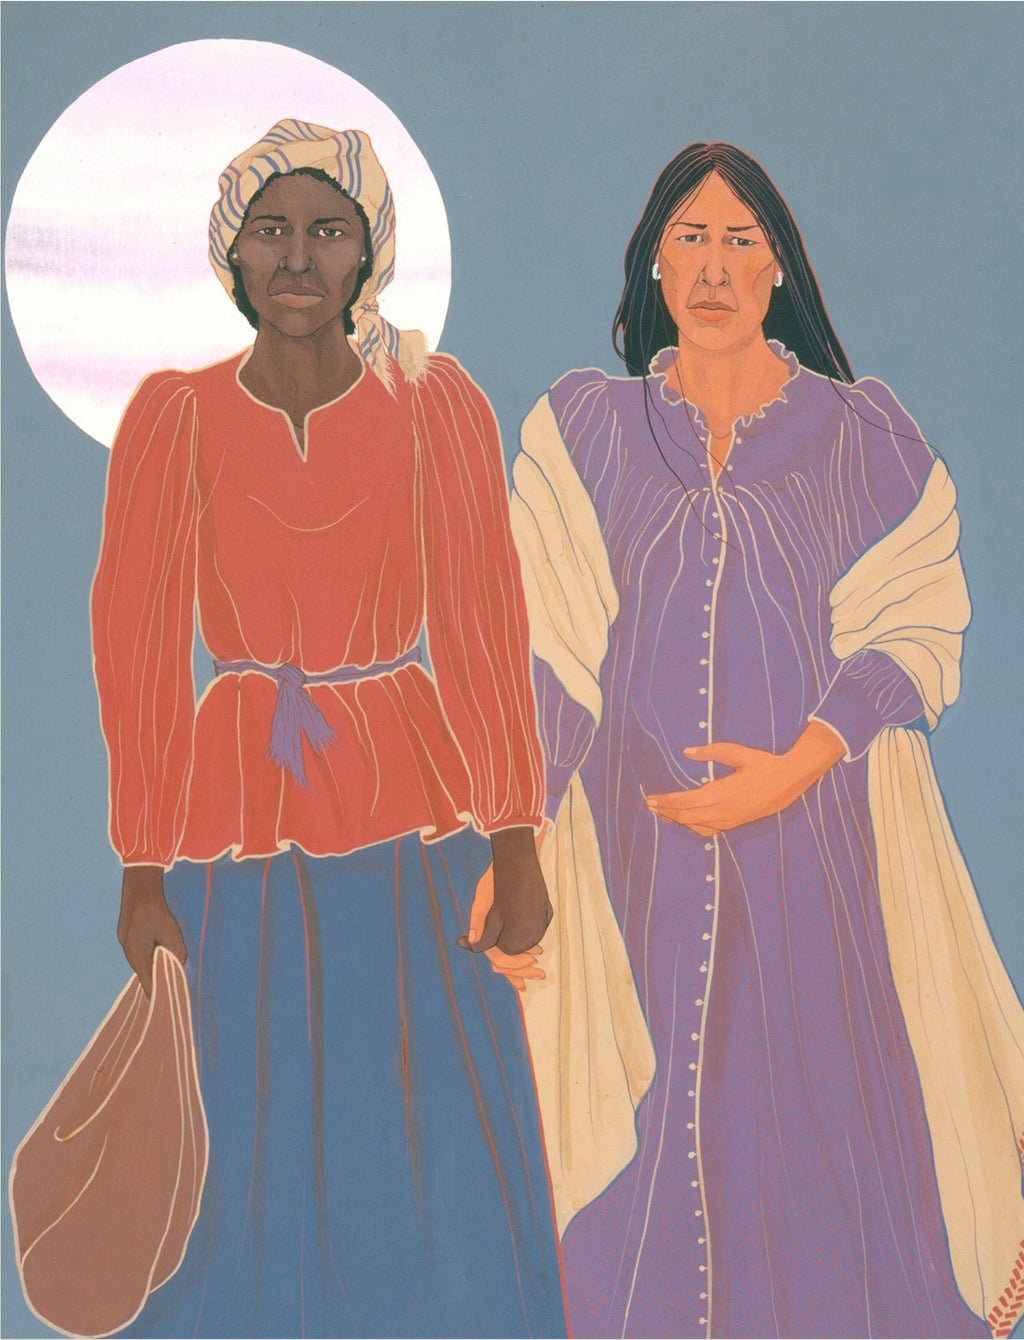 NATIVE AND AFRICAN AMERICAN WOMEN HOLDING HANDS ON TRAIL OF TEARS